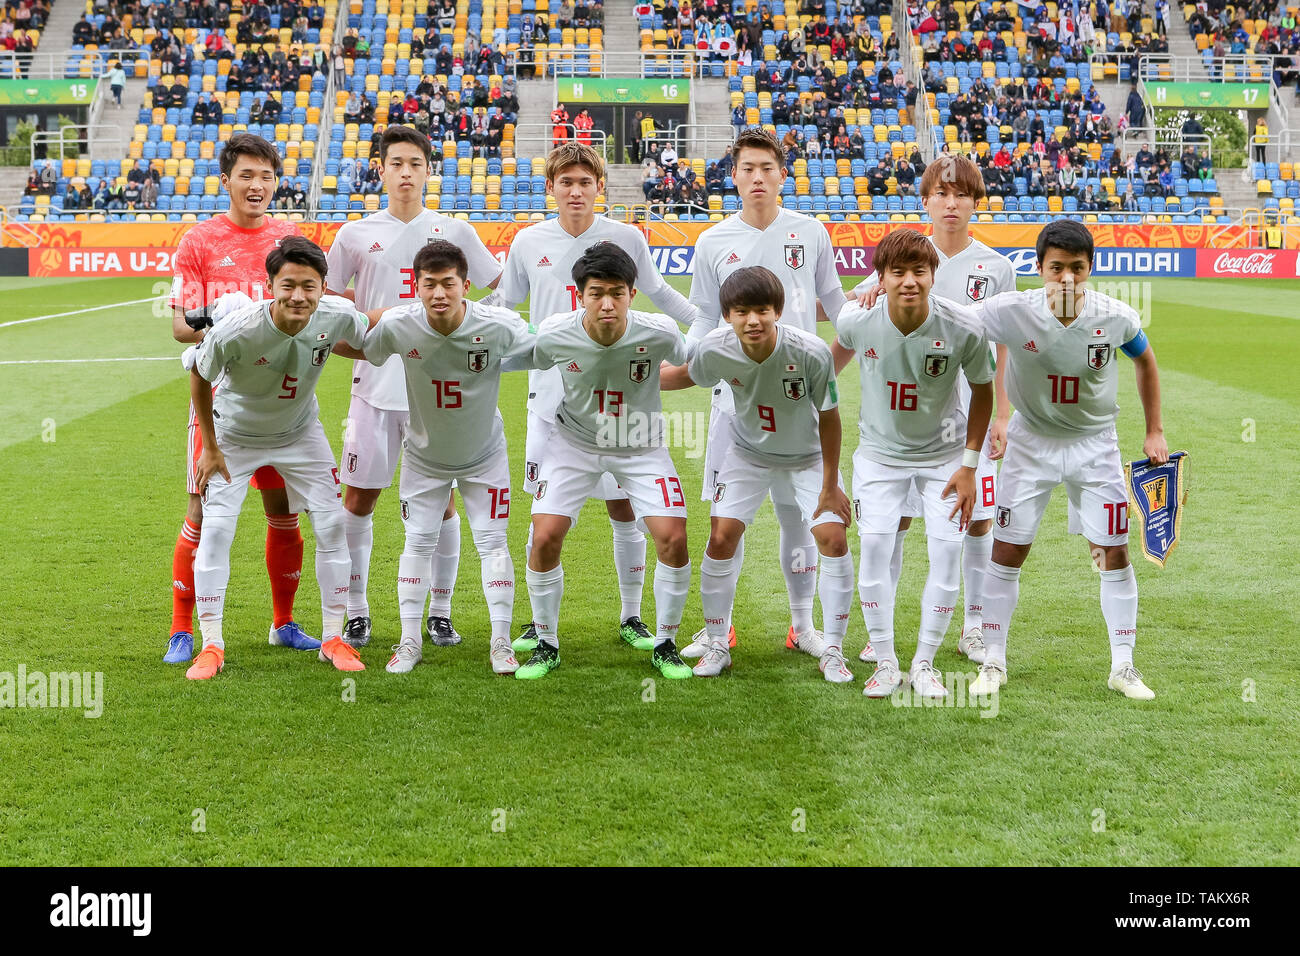 Gdynia Stadium, Gdynia, Poland - 26th May, 2019: National team of Japan seen during group photo before FIFA U-20 World Cup match between Mexico and Japan (GROUP B) in Gdynia. (Final score; Mexico 0:3 Japan) - Stock Image